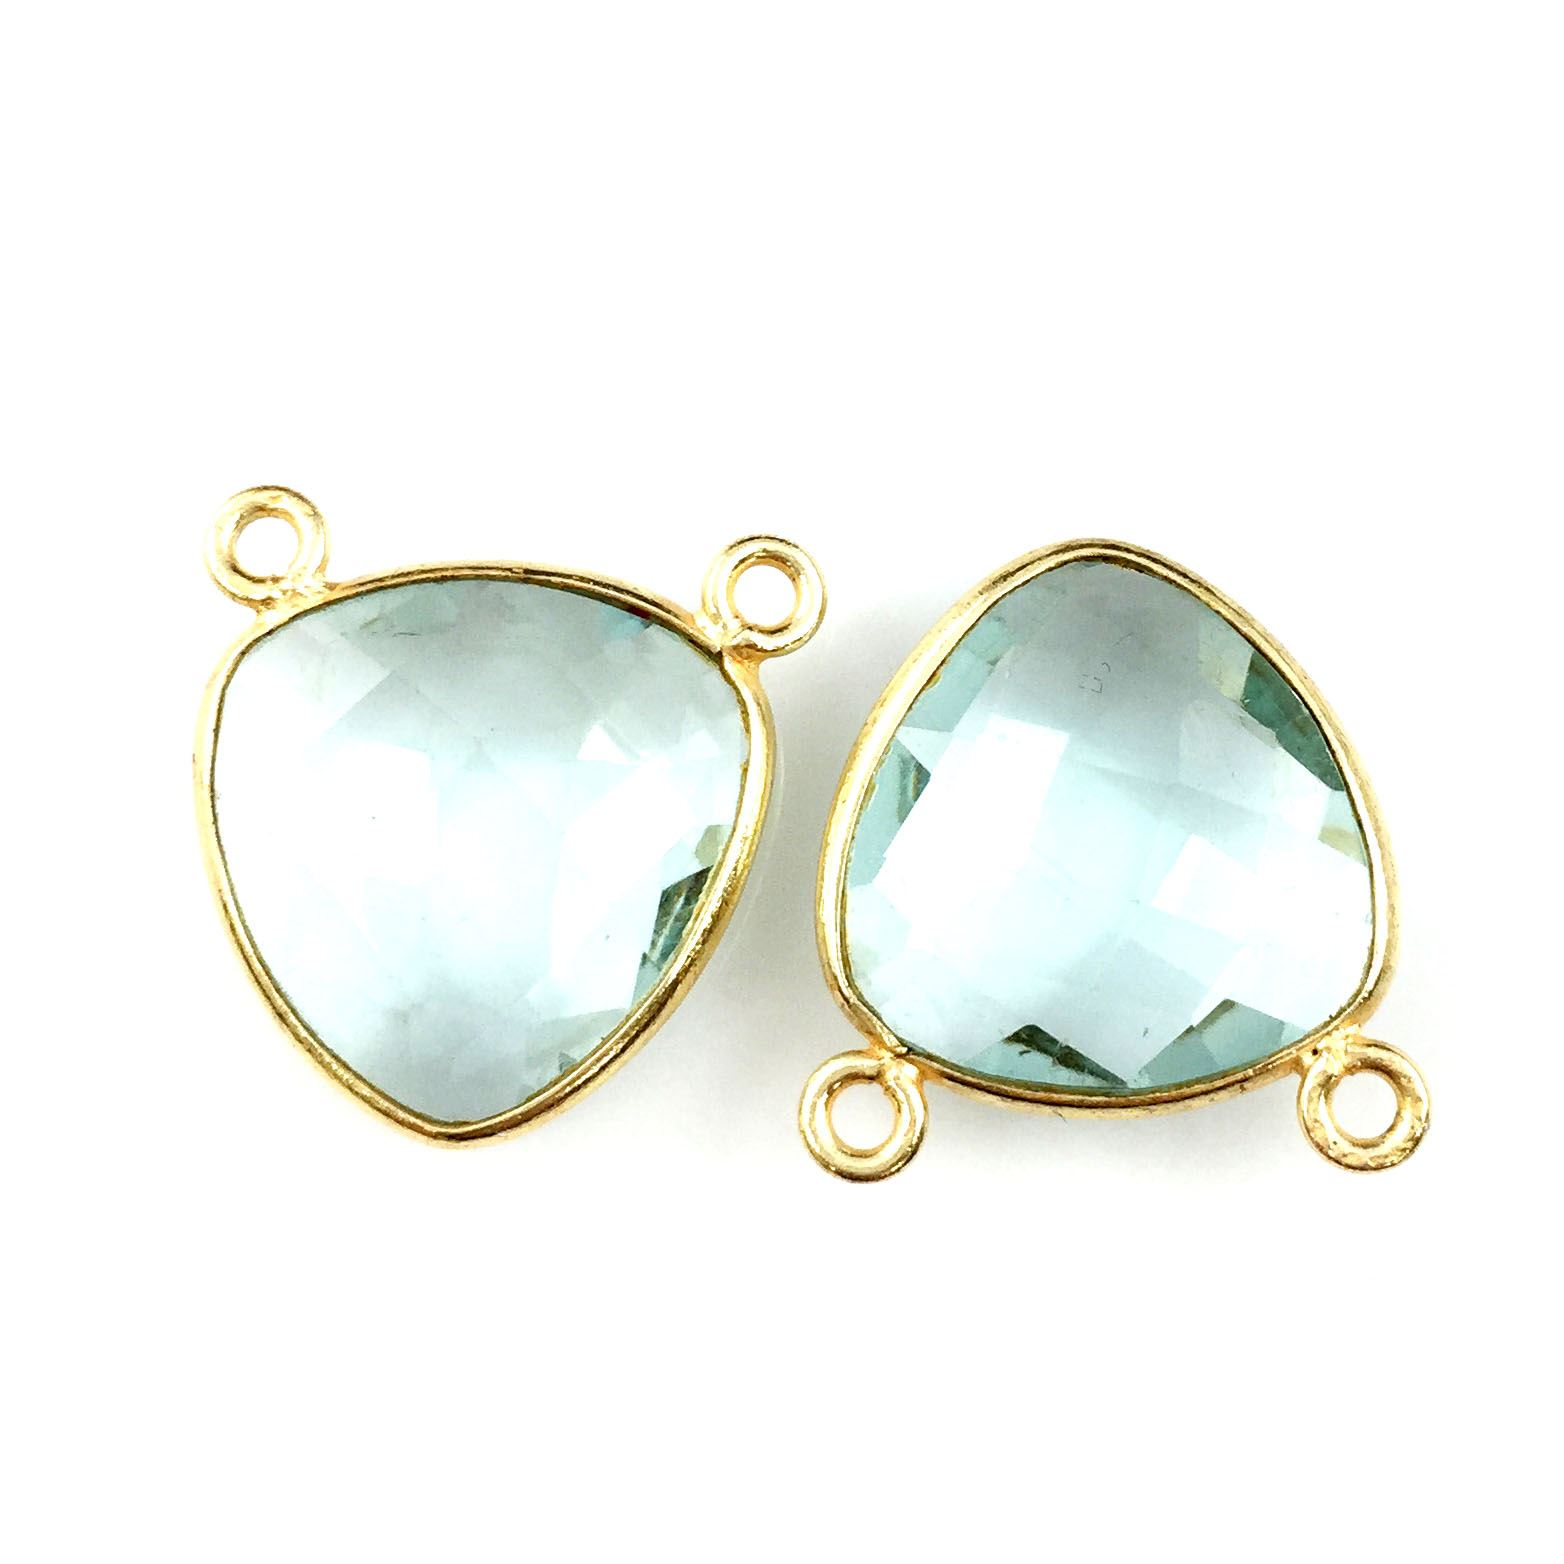 Bezel Gemstone Connector Pendant - Aqua Quartz - Gold plated Sterling Silver - Small Trillion Shaped Faceted - 15mm - 1 piece